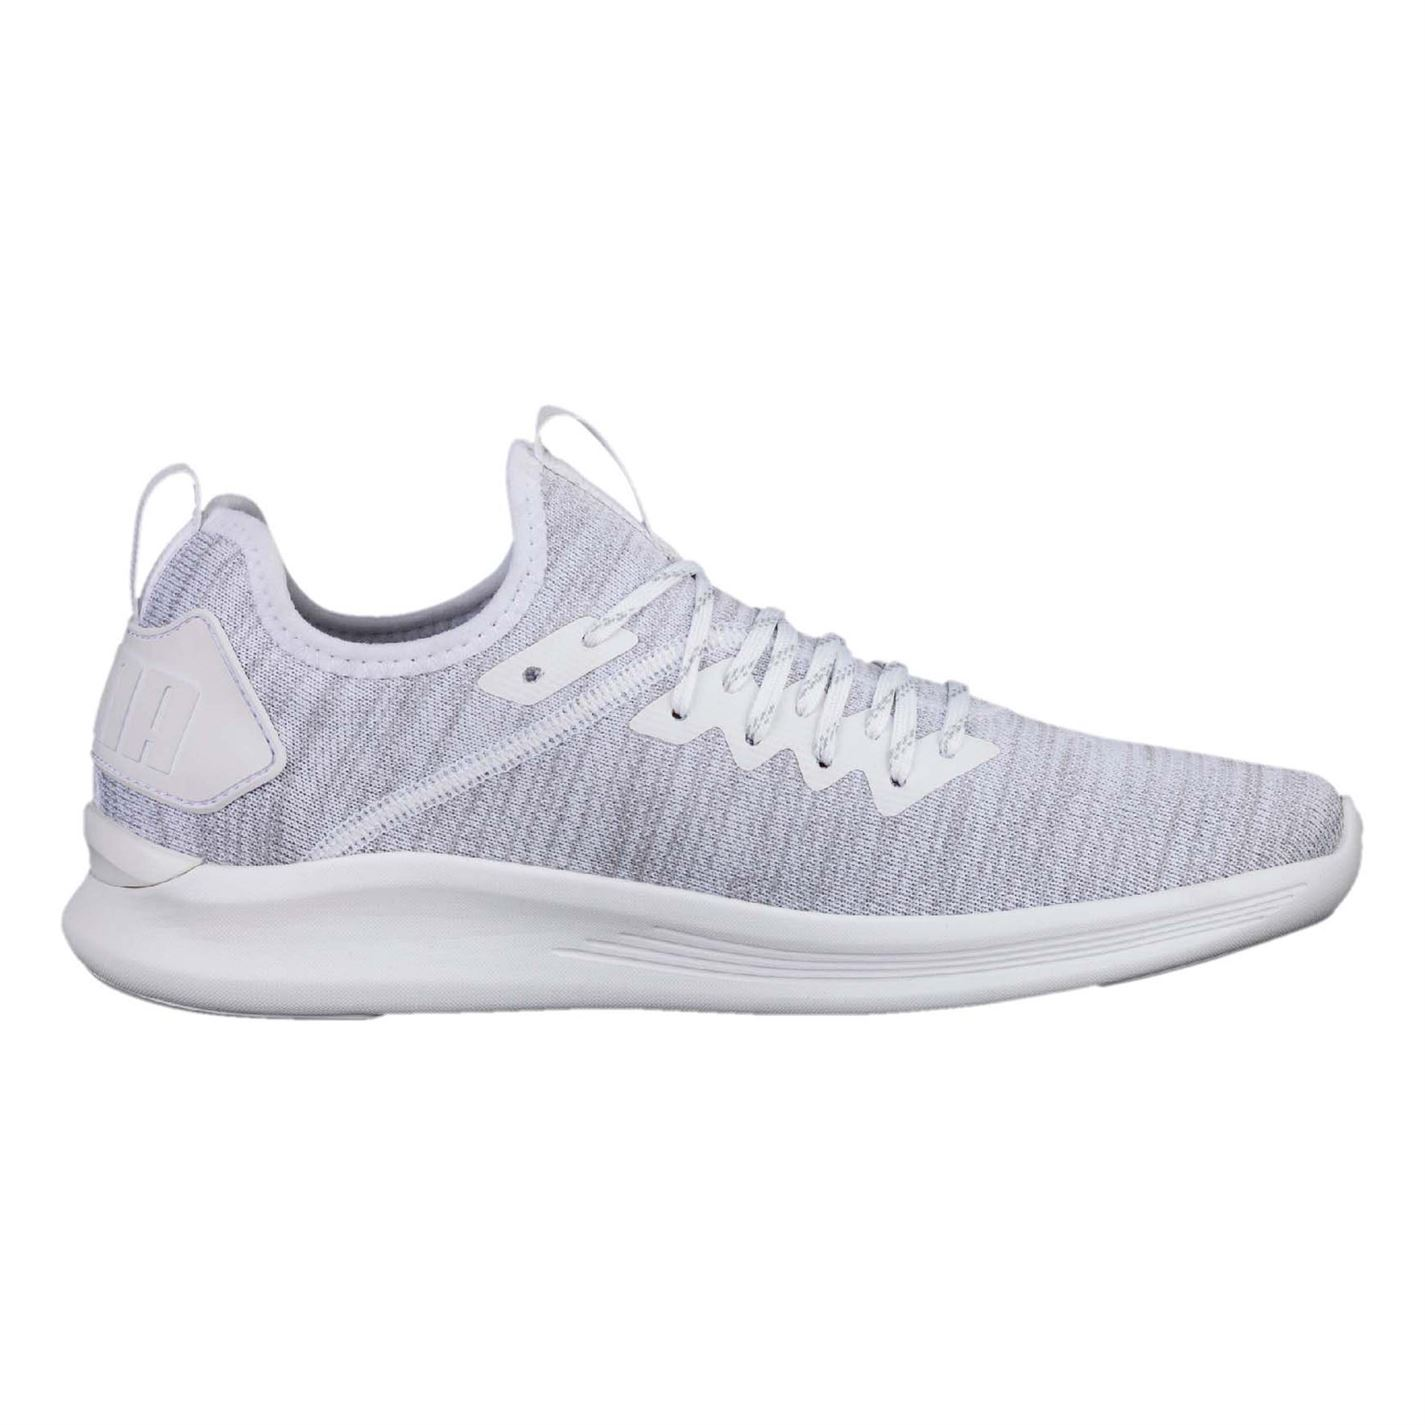 Puma Ignite Flash Trainers Mens White Athletic Sneakers Shoes